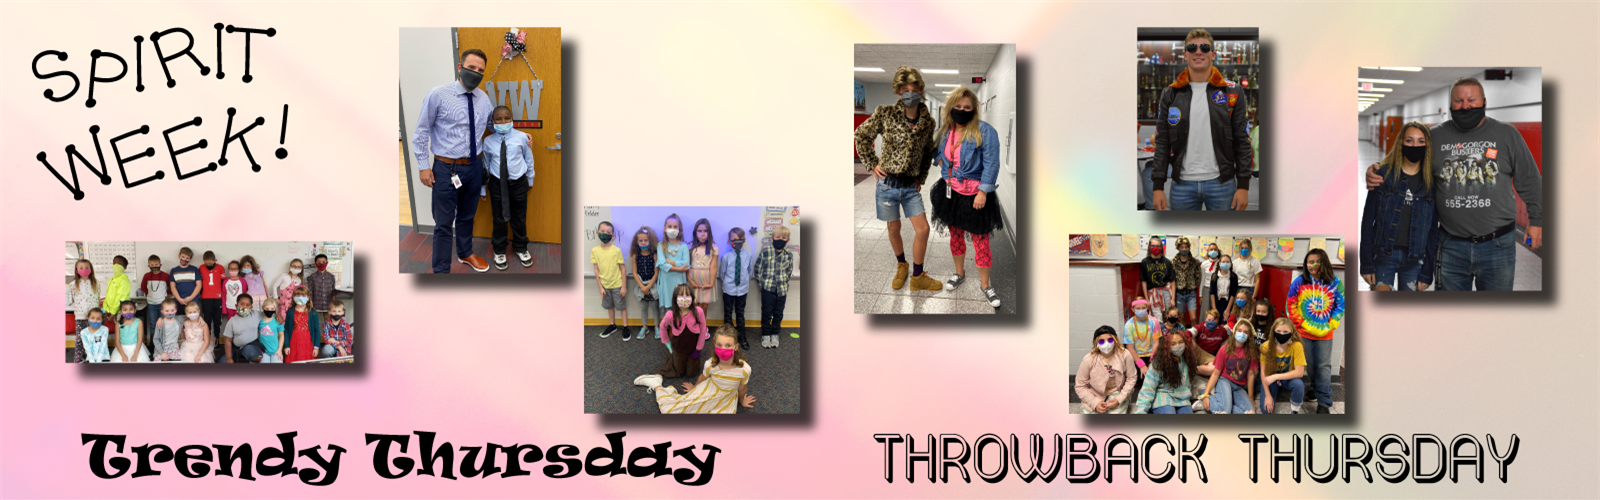 Various photos of staff and students dressed up for spirit week (Trendy Thursay and Throwback Thursday)